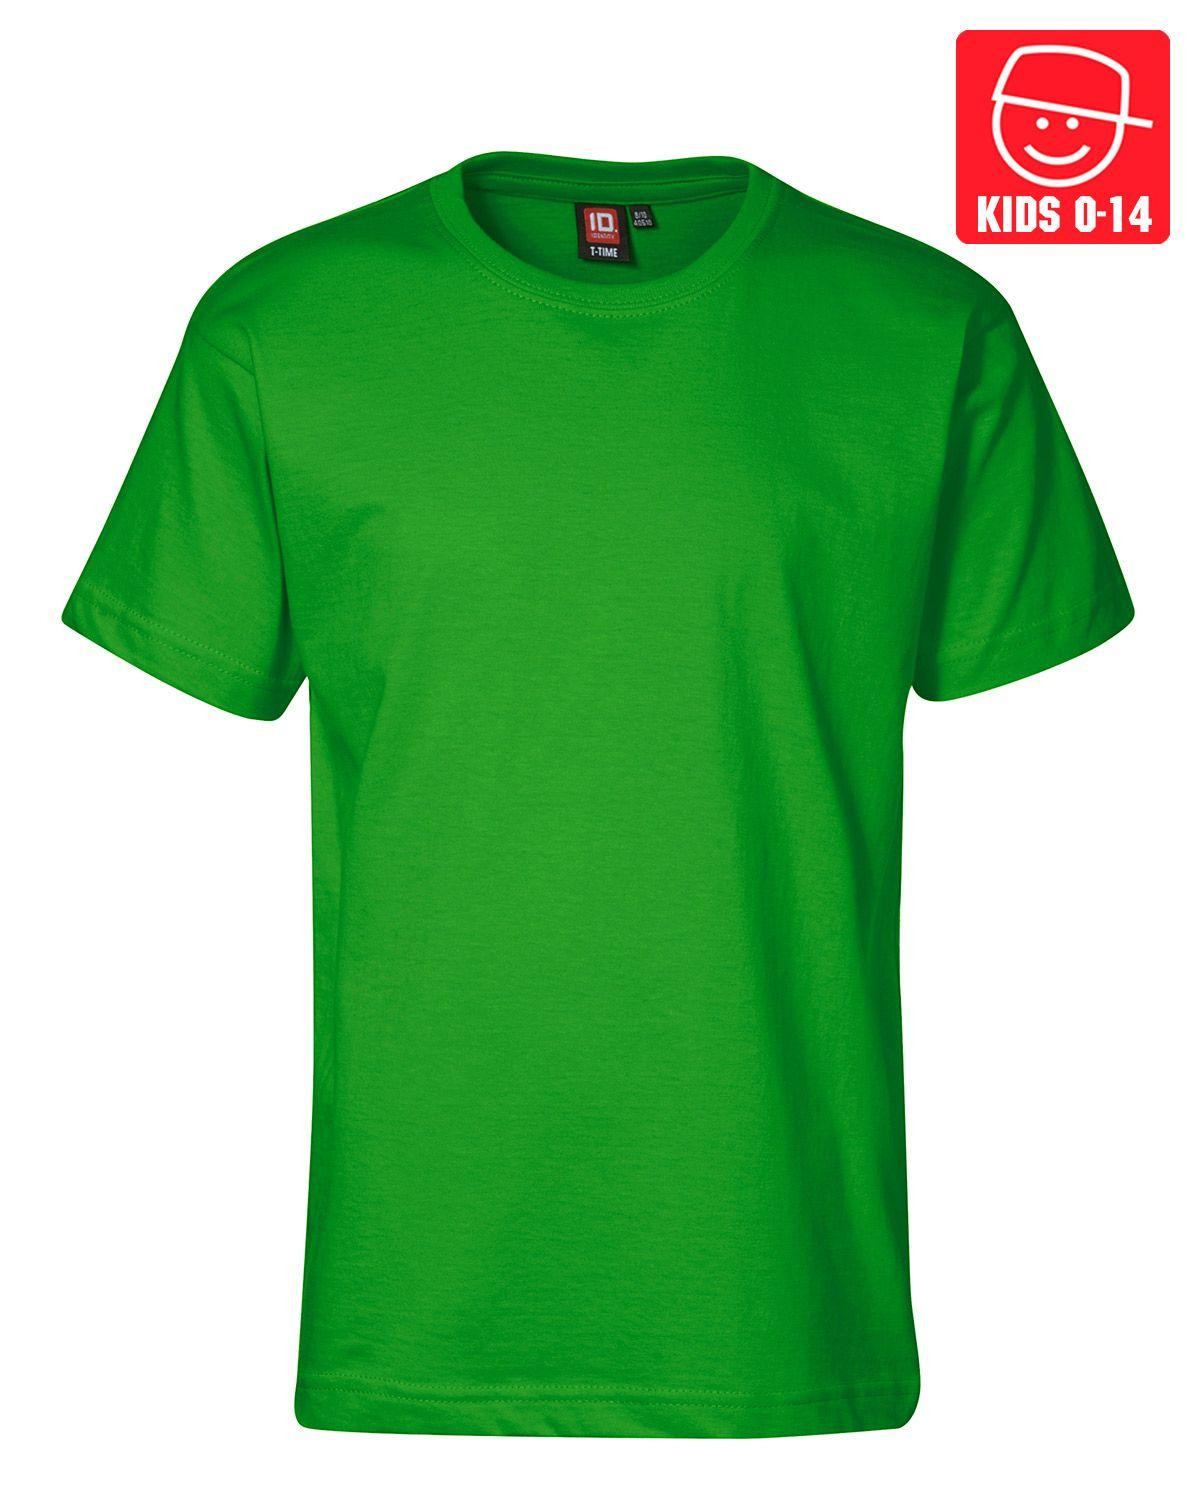 Image of   ID T-TIME T-shirt (Grøn, 152)